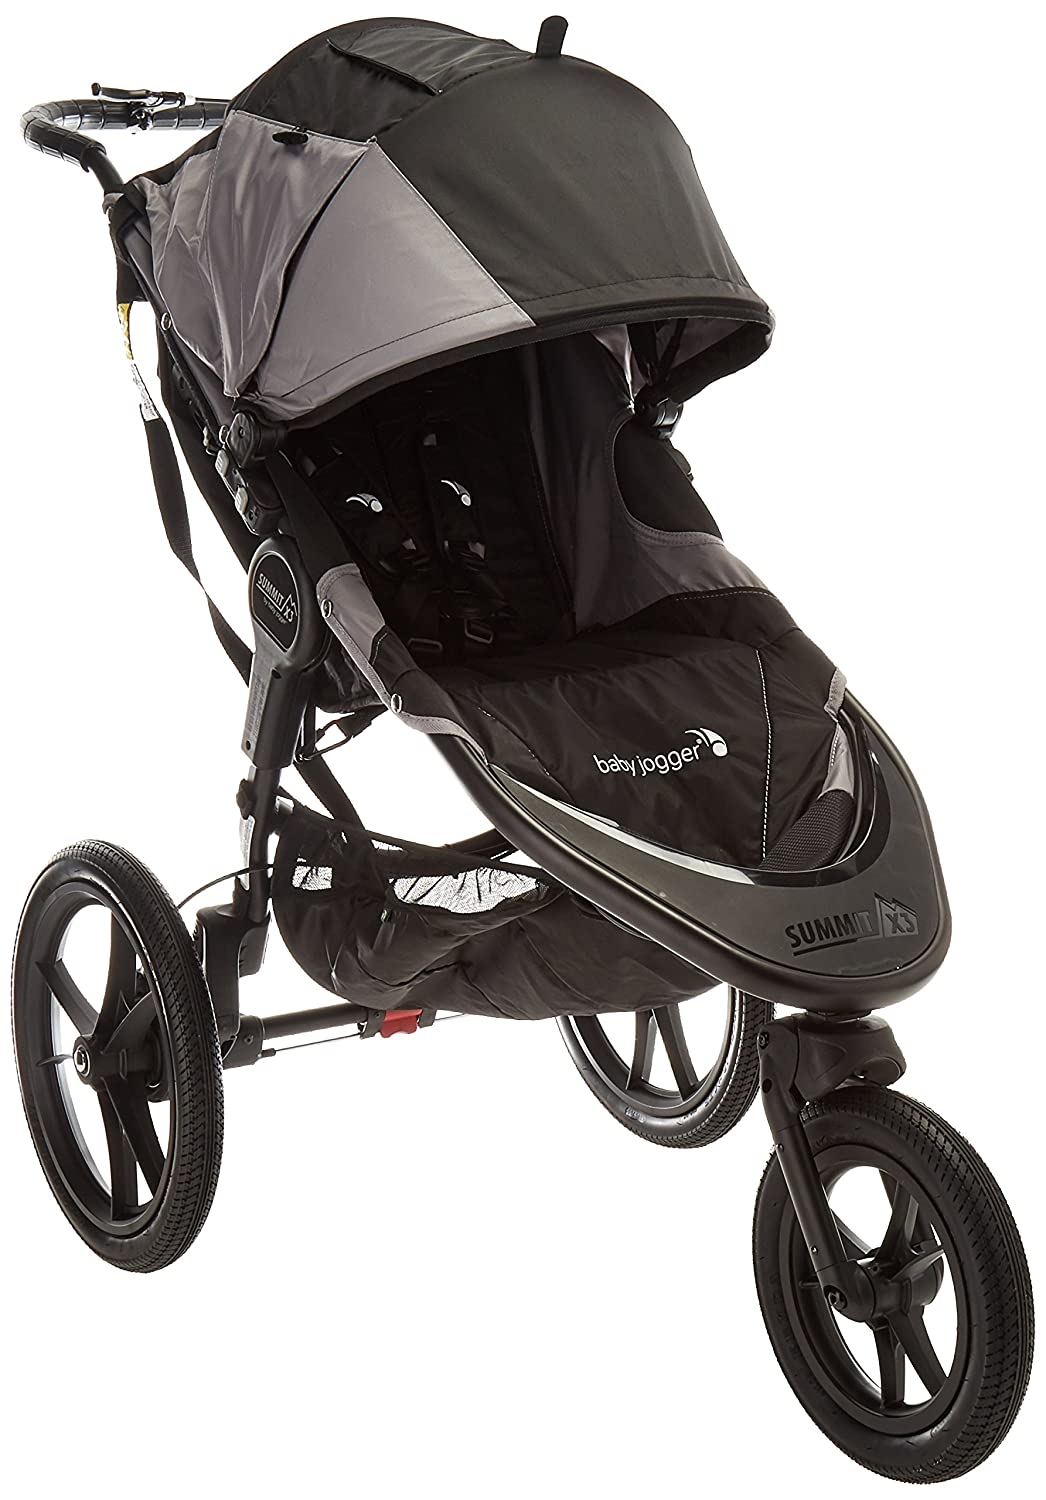 Baby Jogger Summit X3 Jogging Stroller – 2016 Air-Filled Rubber Tires All-Wheel Suspension Quick Fold Jogging Stroller, Black Gray